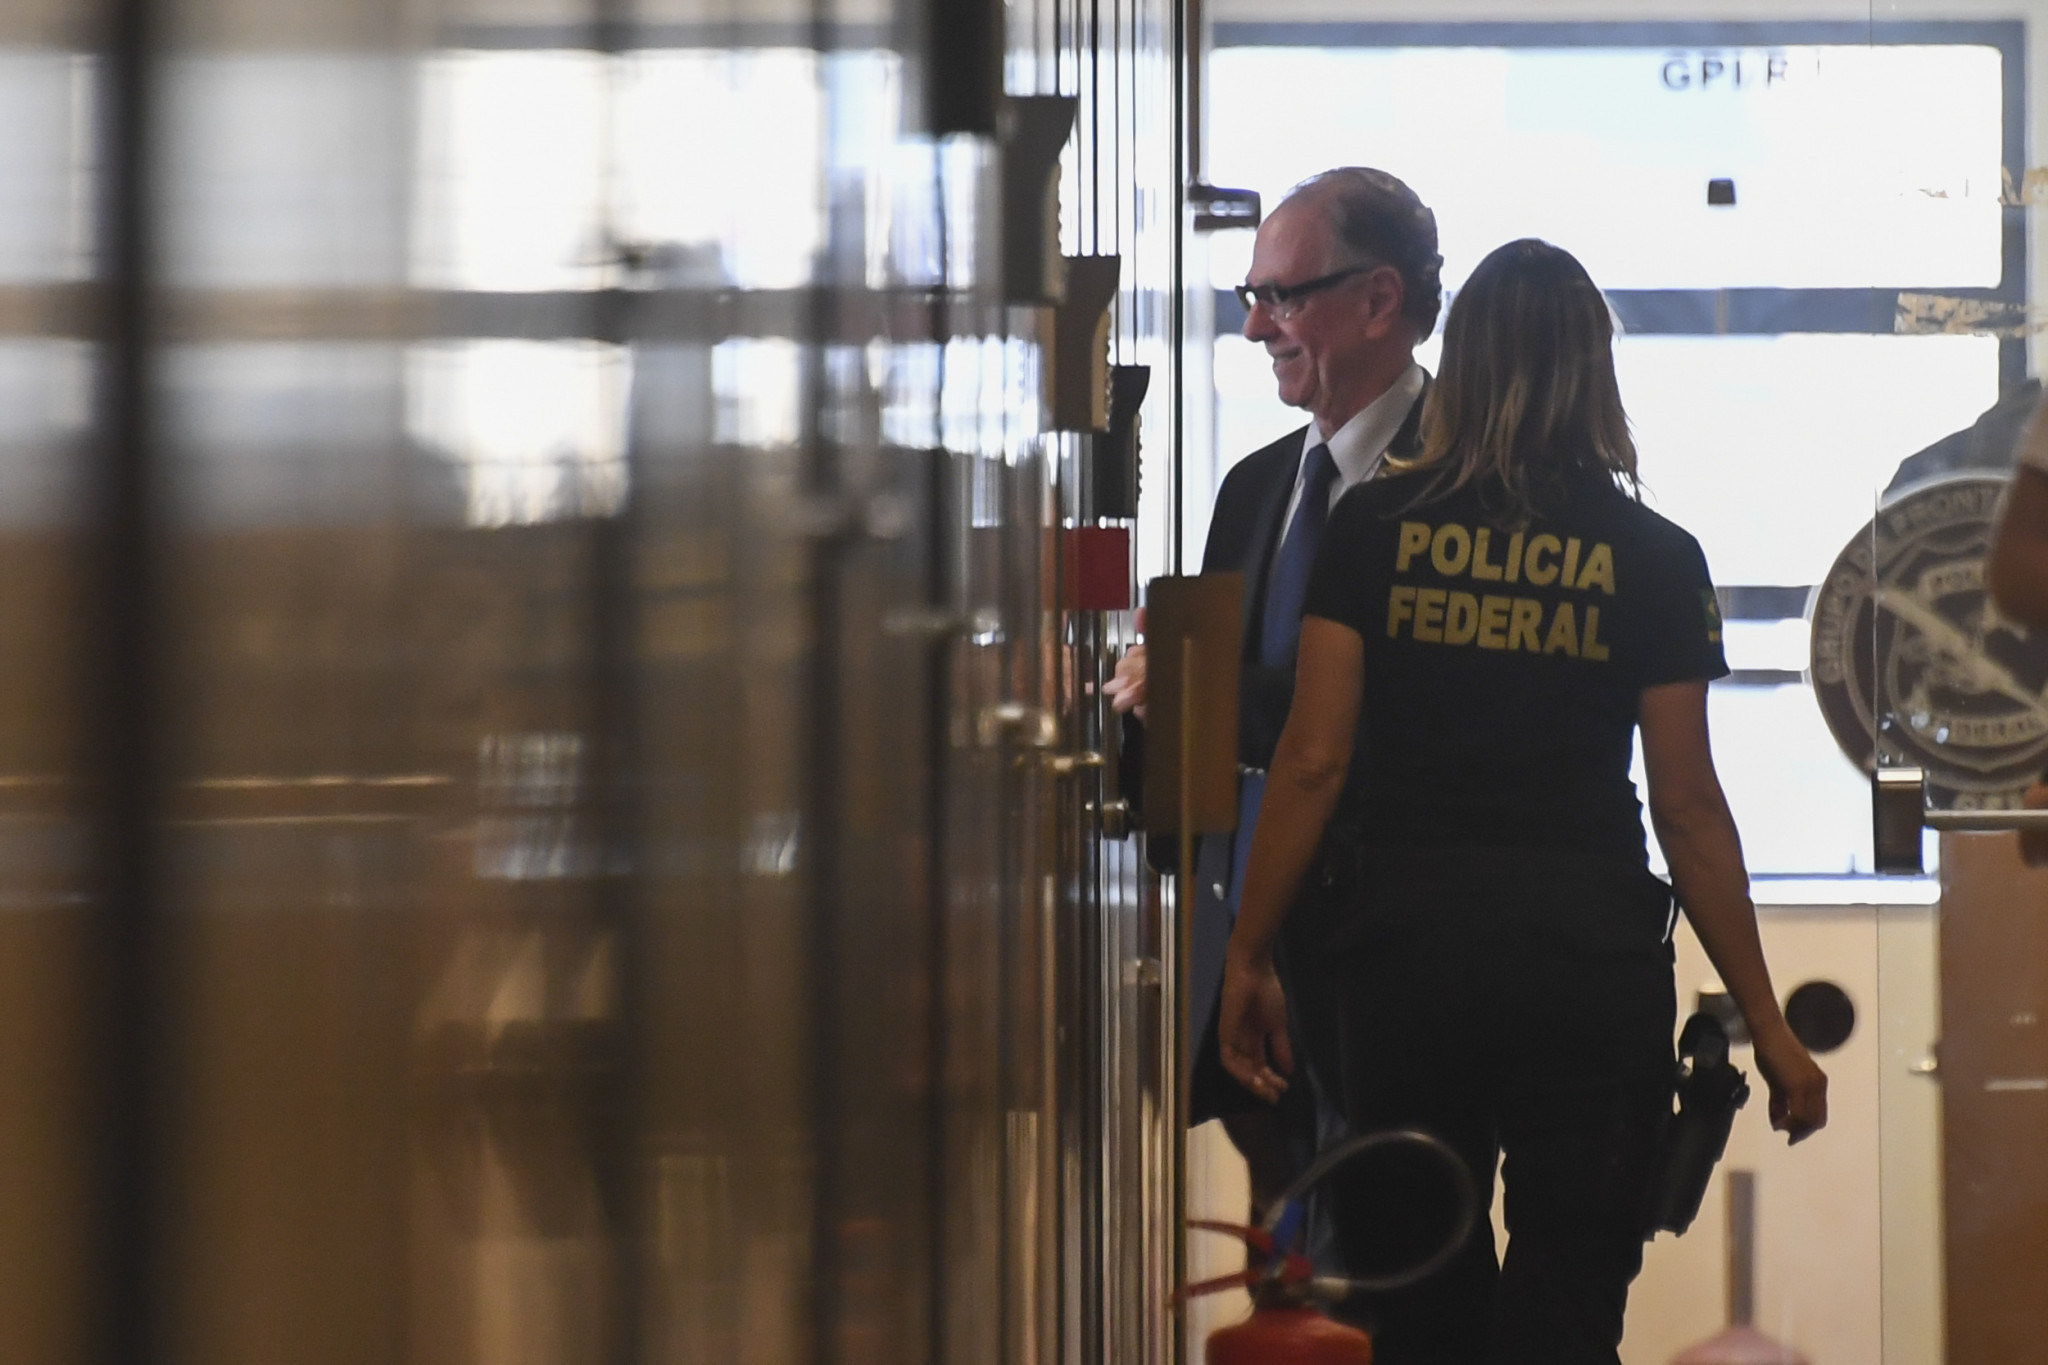 Rio 2016 President Carlos Nuzman entering the Federal Police Building in Rio de Janeiro last week after his house was searched following claims he had been involved in a scheme to help bribe IOC members from Africa ©Getty Images